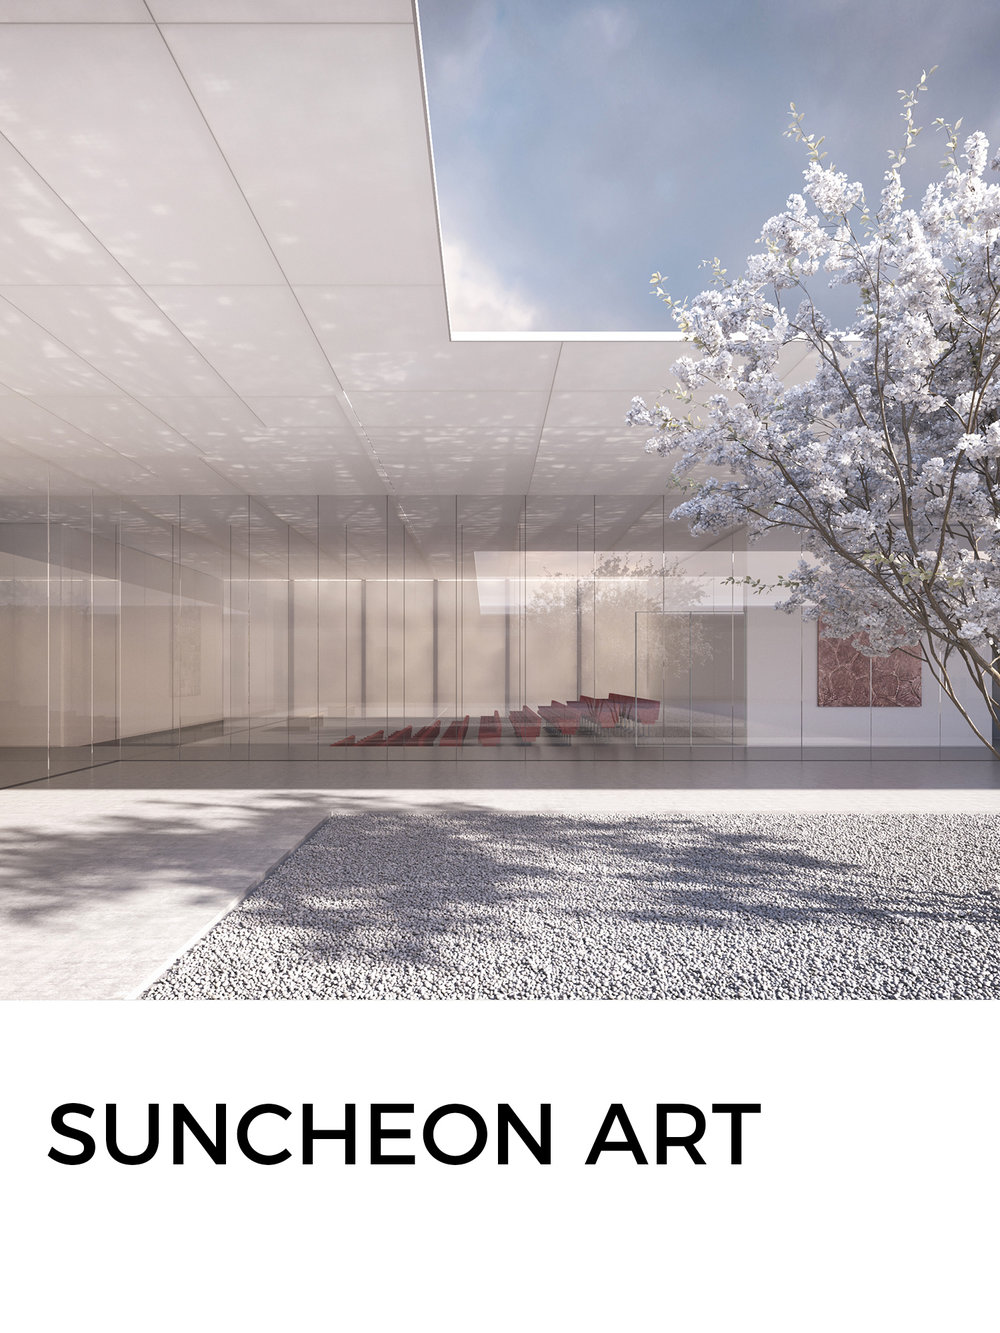 Suncheon Art